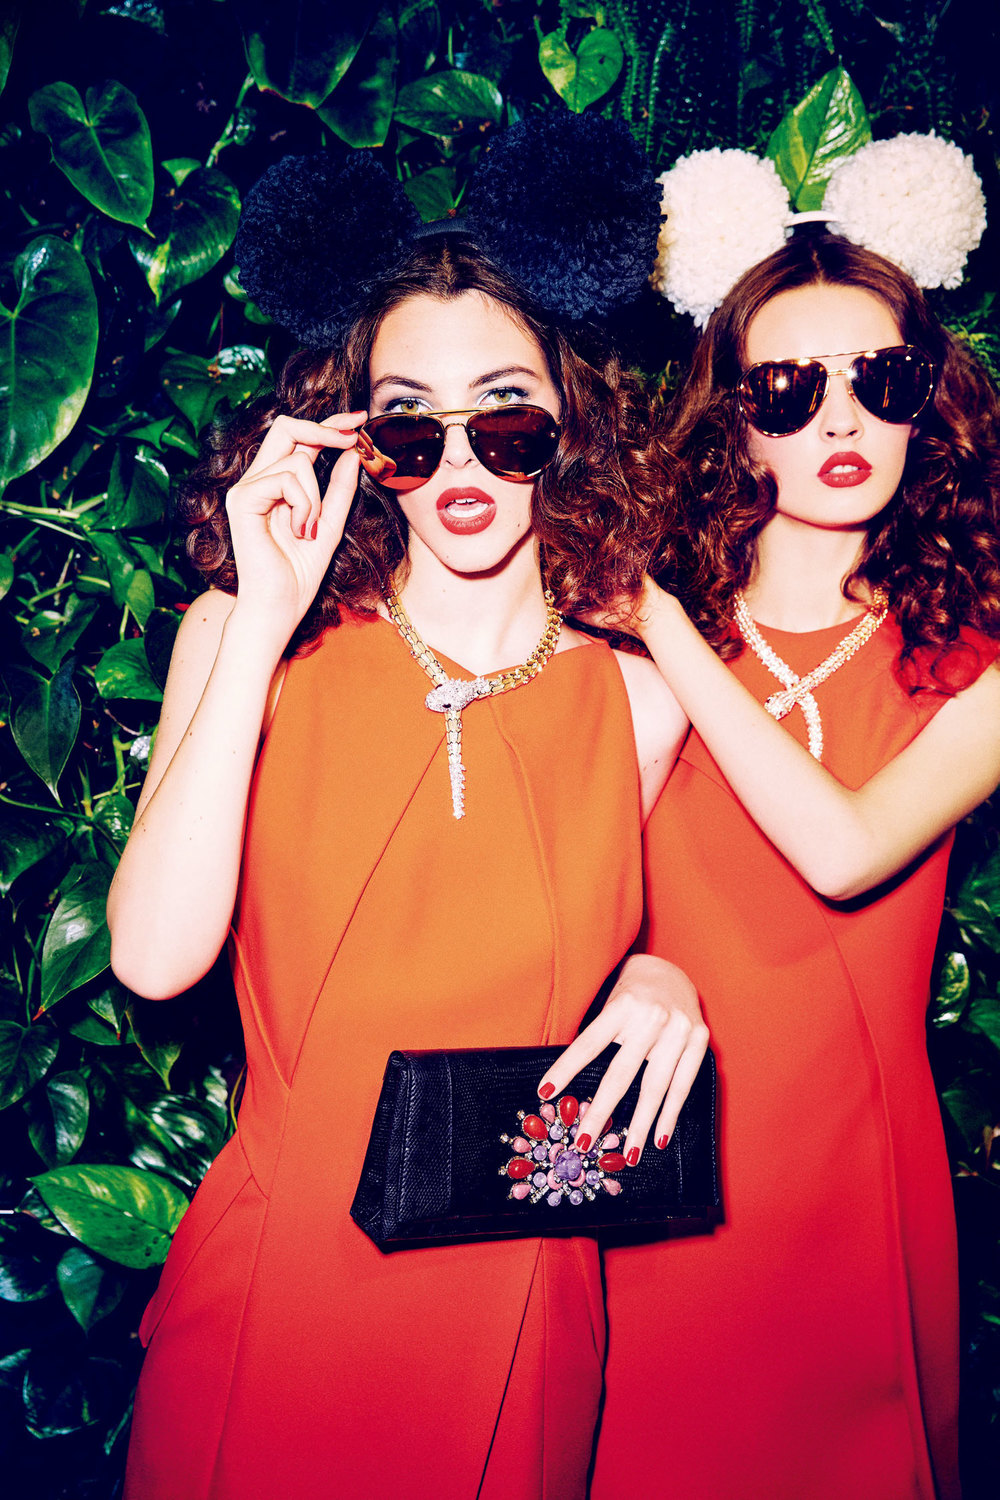 anna-grostina-and-vittoria-ceretti-by-ellen-von-unwerth-for-vogue-japan-september-2015-8.jpg